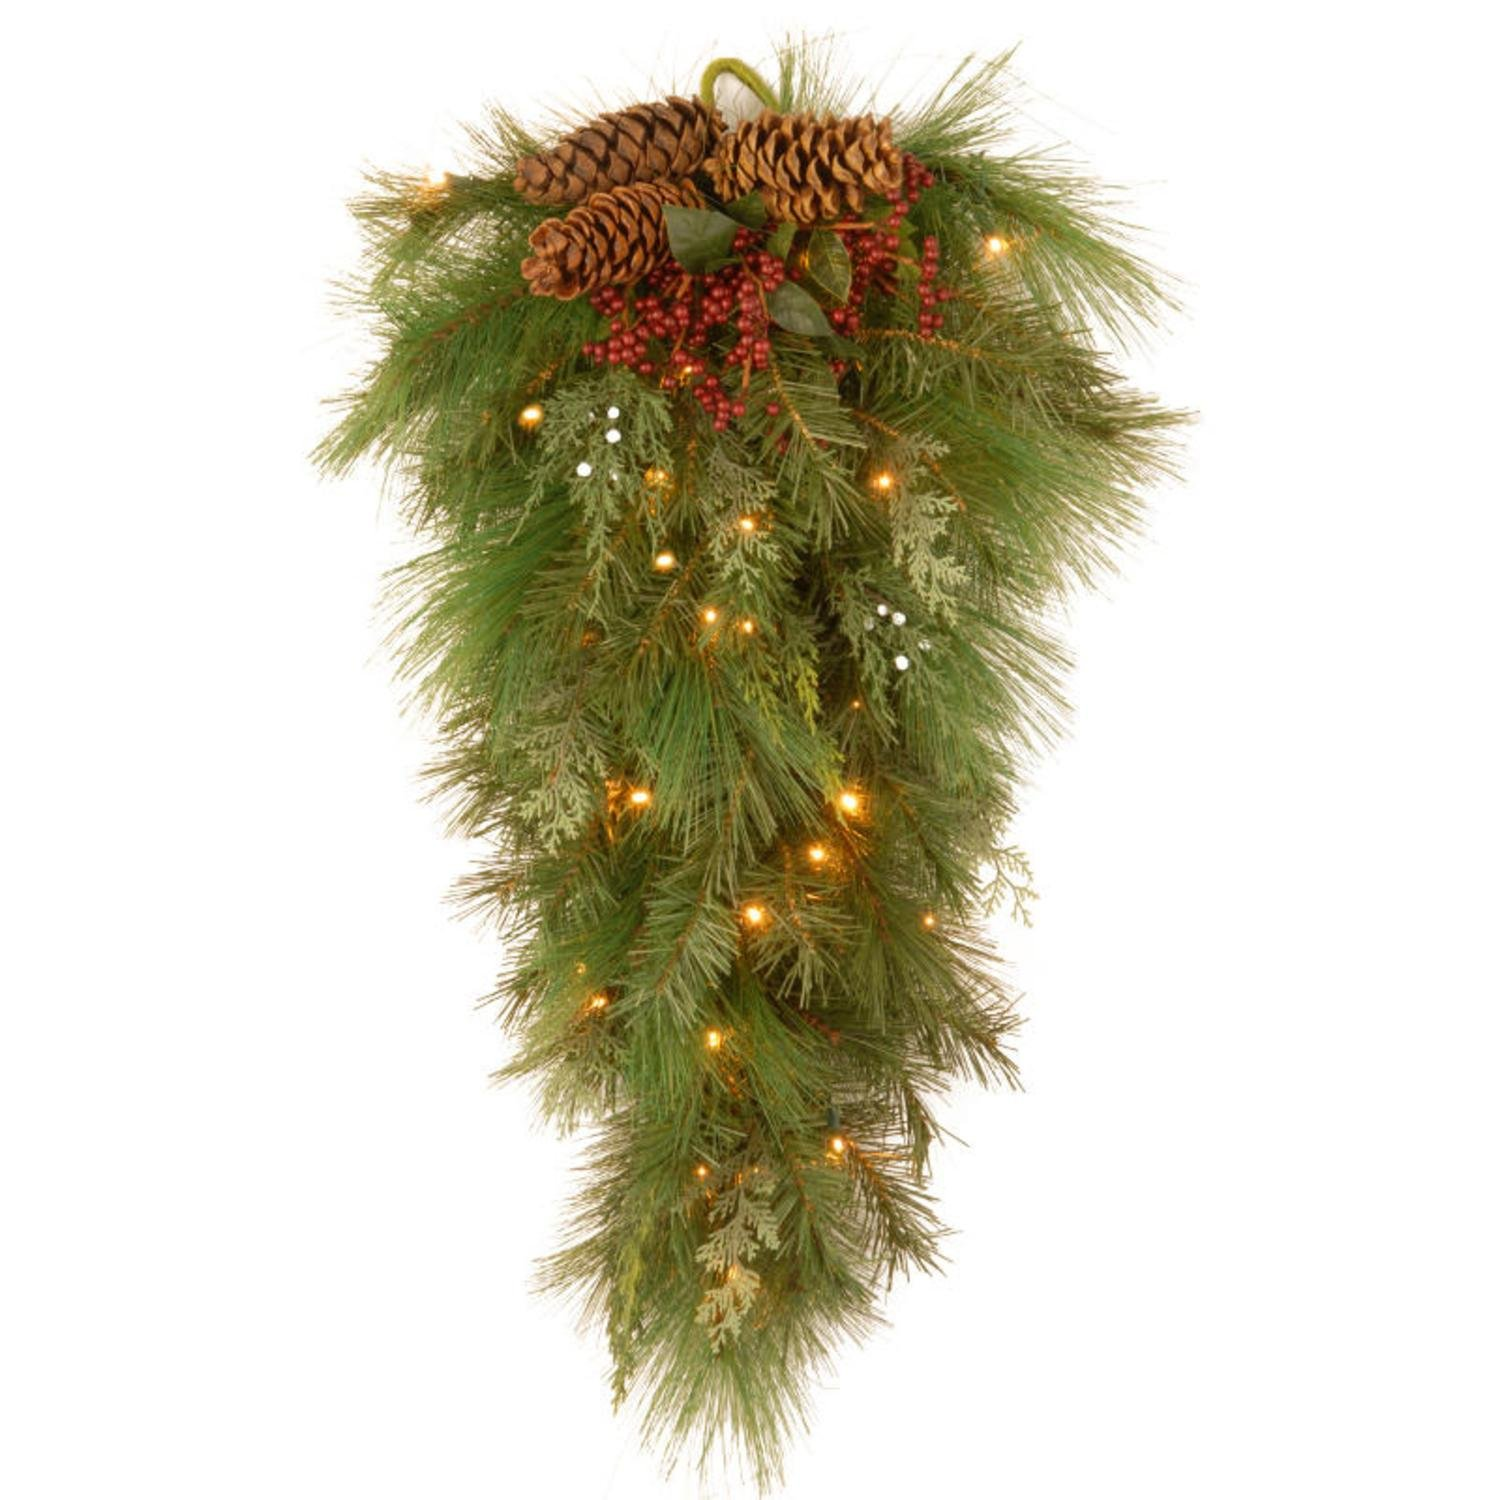 National Tree Company 28'' Pre-lit Battery-Operated White Pine Artificial Christmas Teardrop Swag - Warm Clear LED Lights